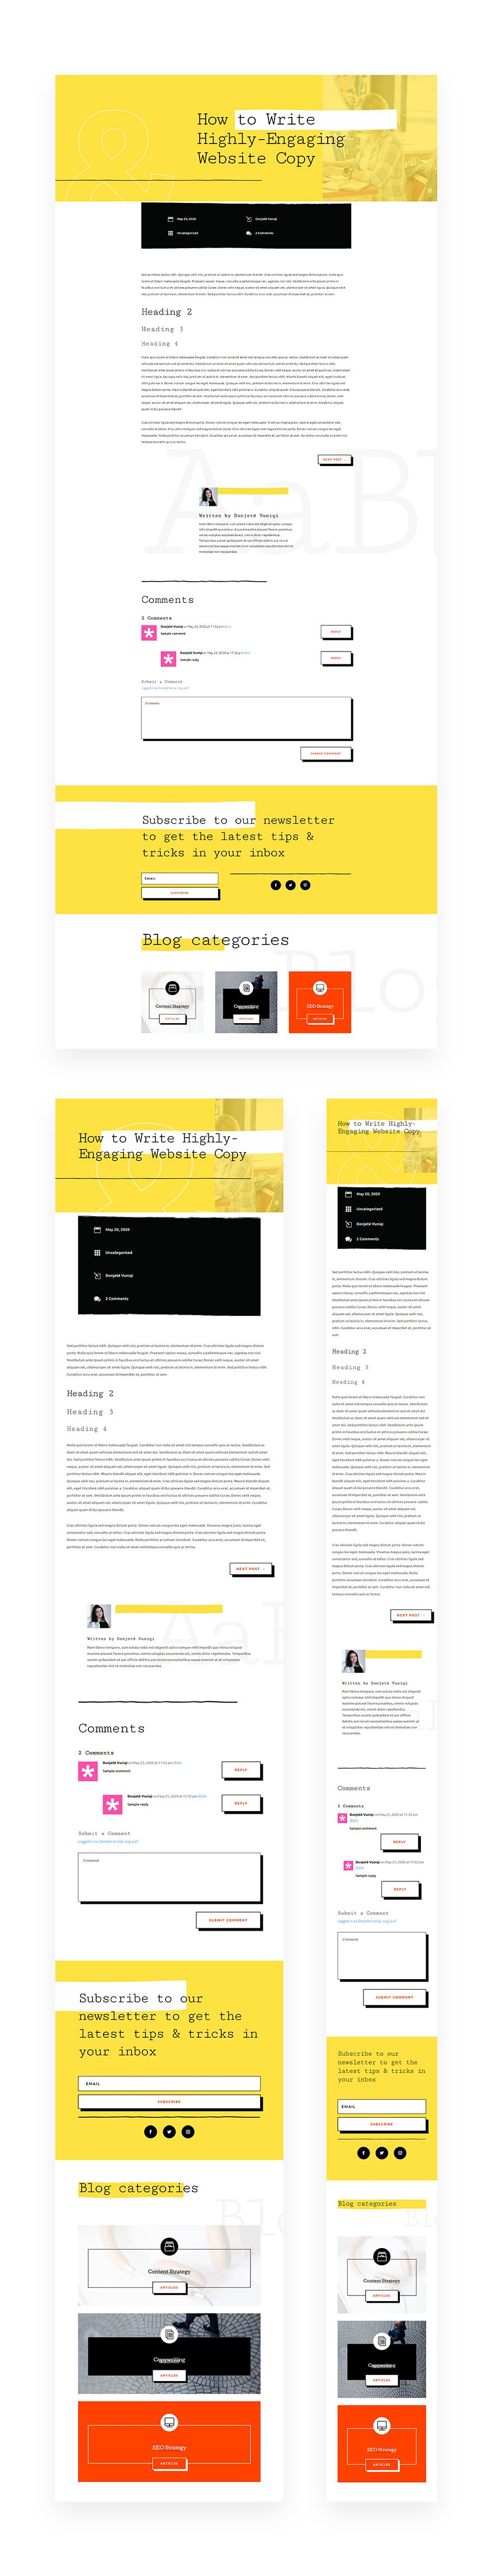 Download a FREE Blog Post Template for Divi's Freelance Writer Layout Pack  | Elegant Themes Blog